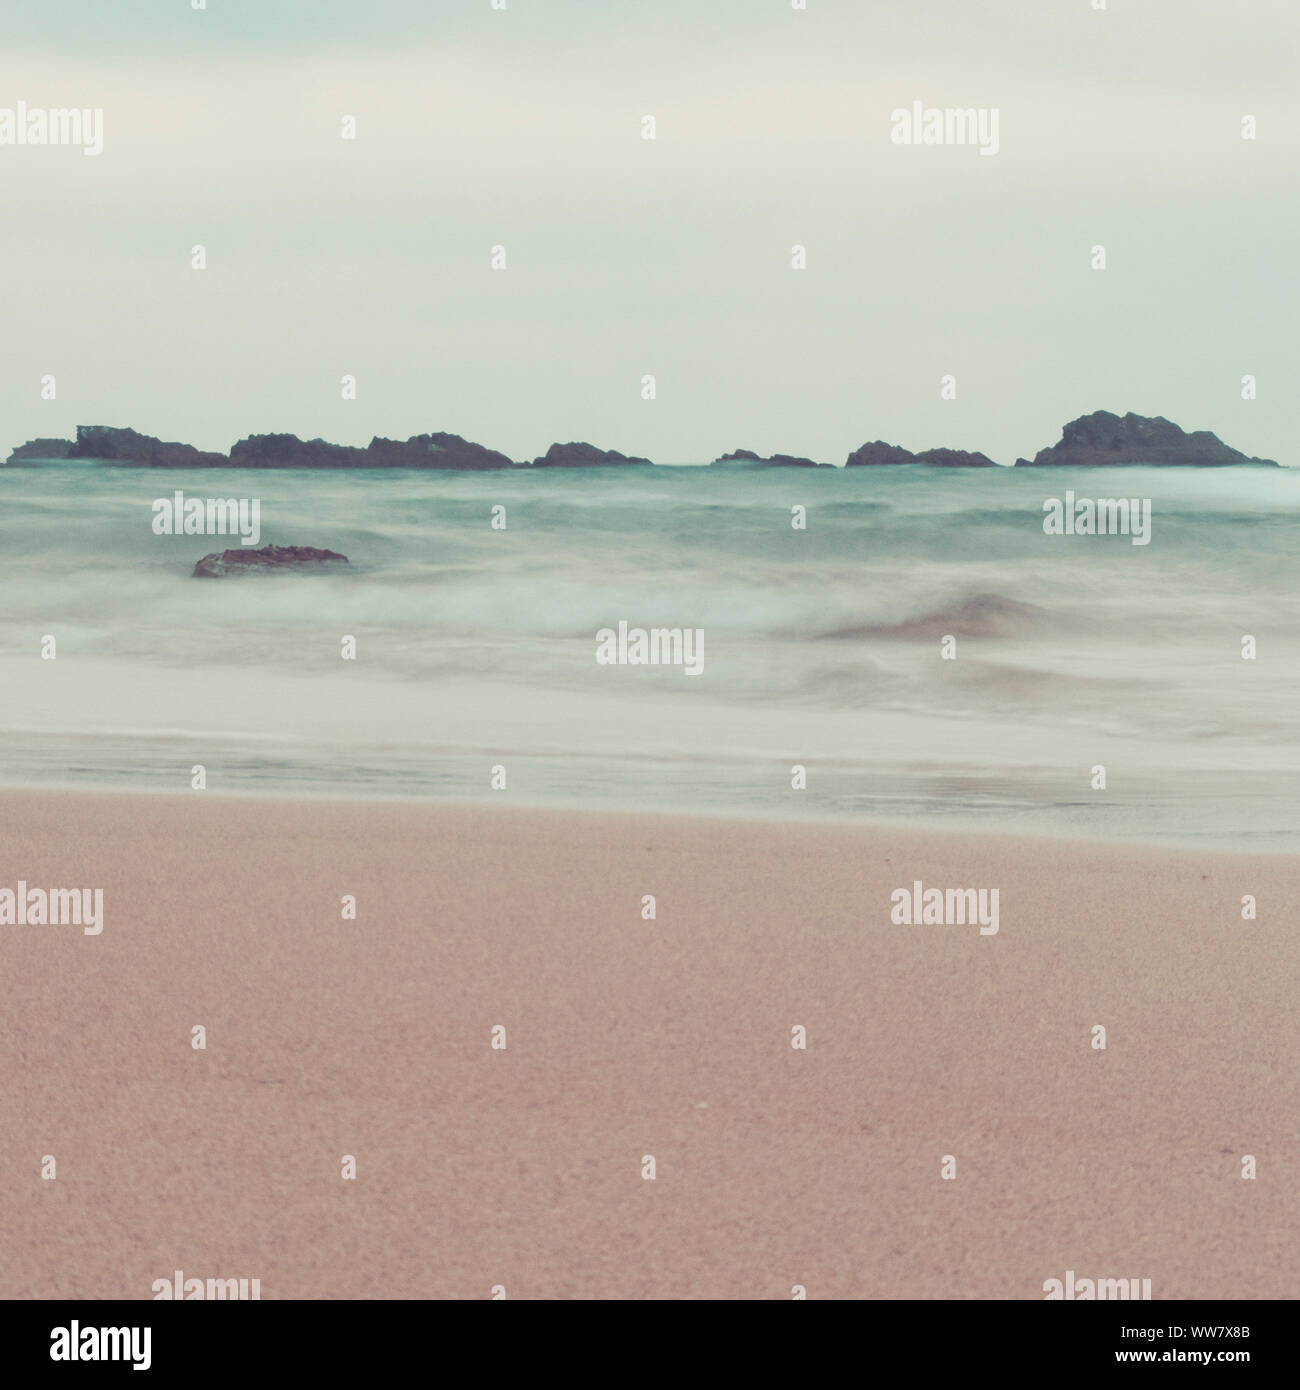 fine art ocean waves and rocks landscape in pastel tones. vintage colors. beach, waves and sky in same tones for artistic outdoor conceptual image Stock Photo